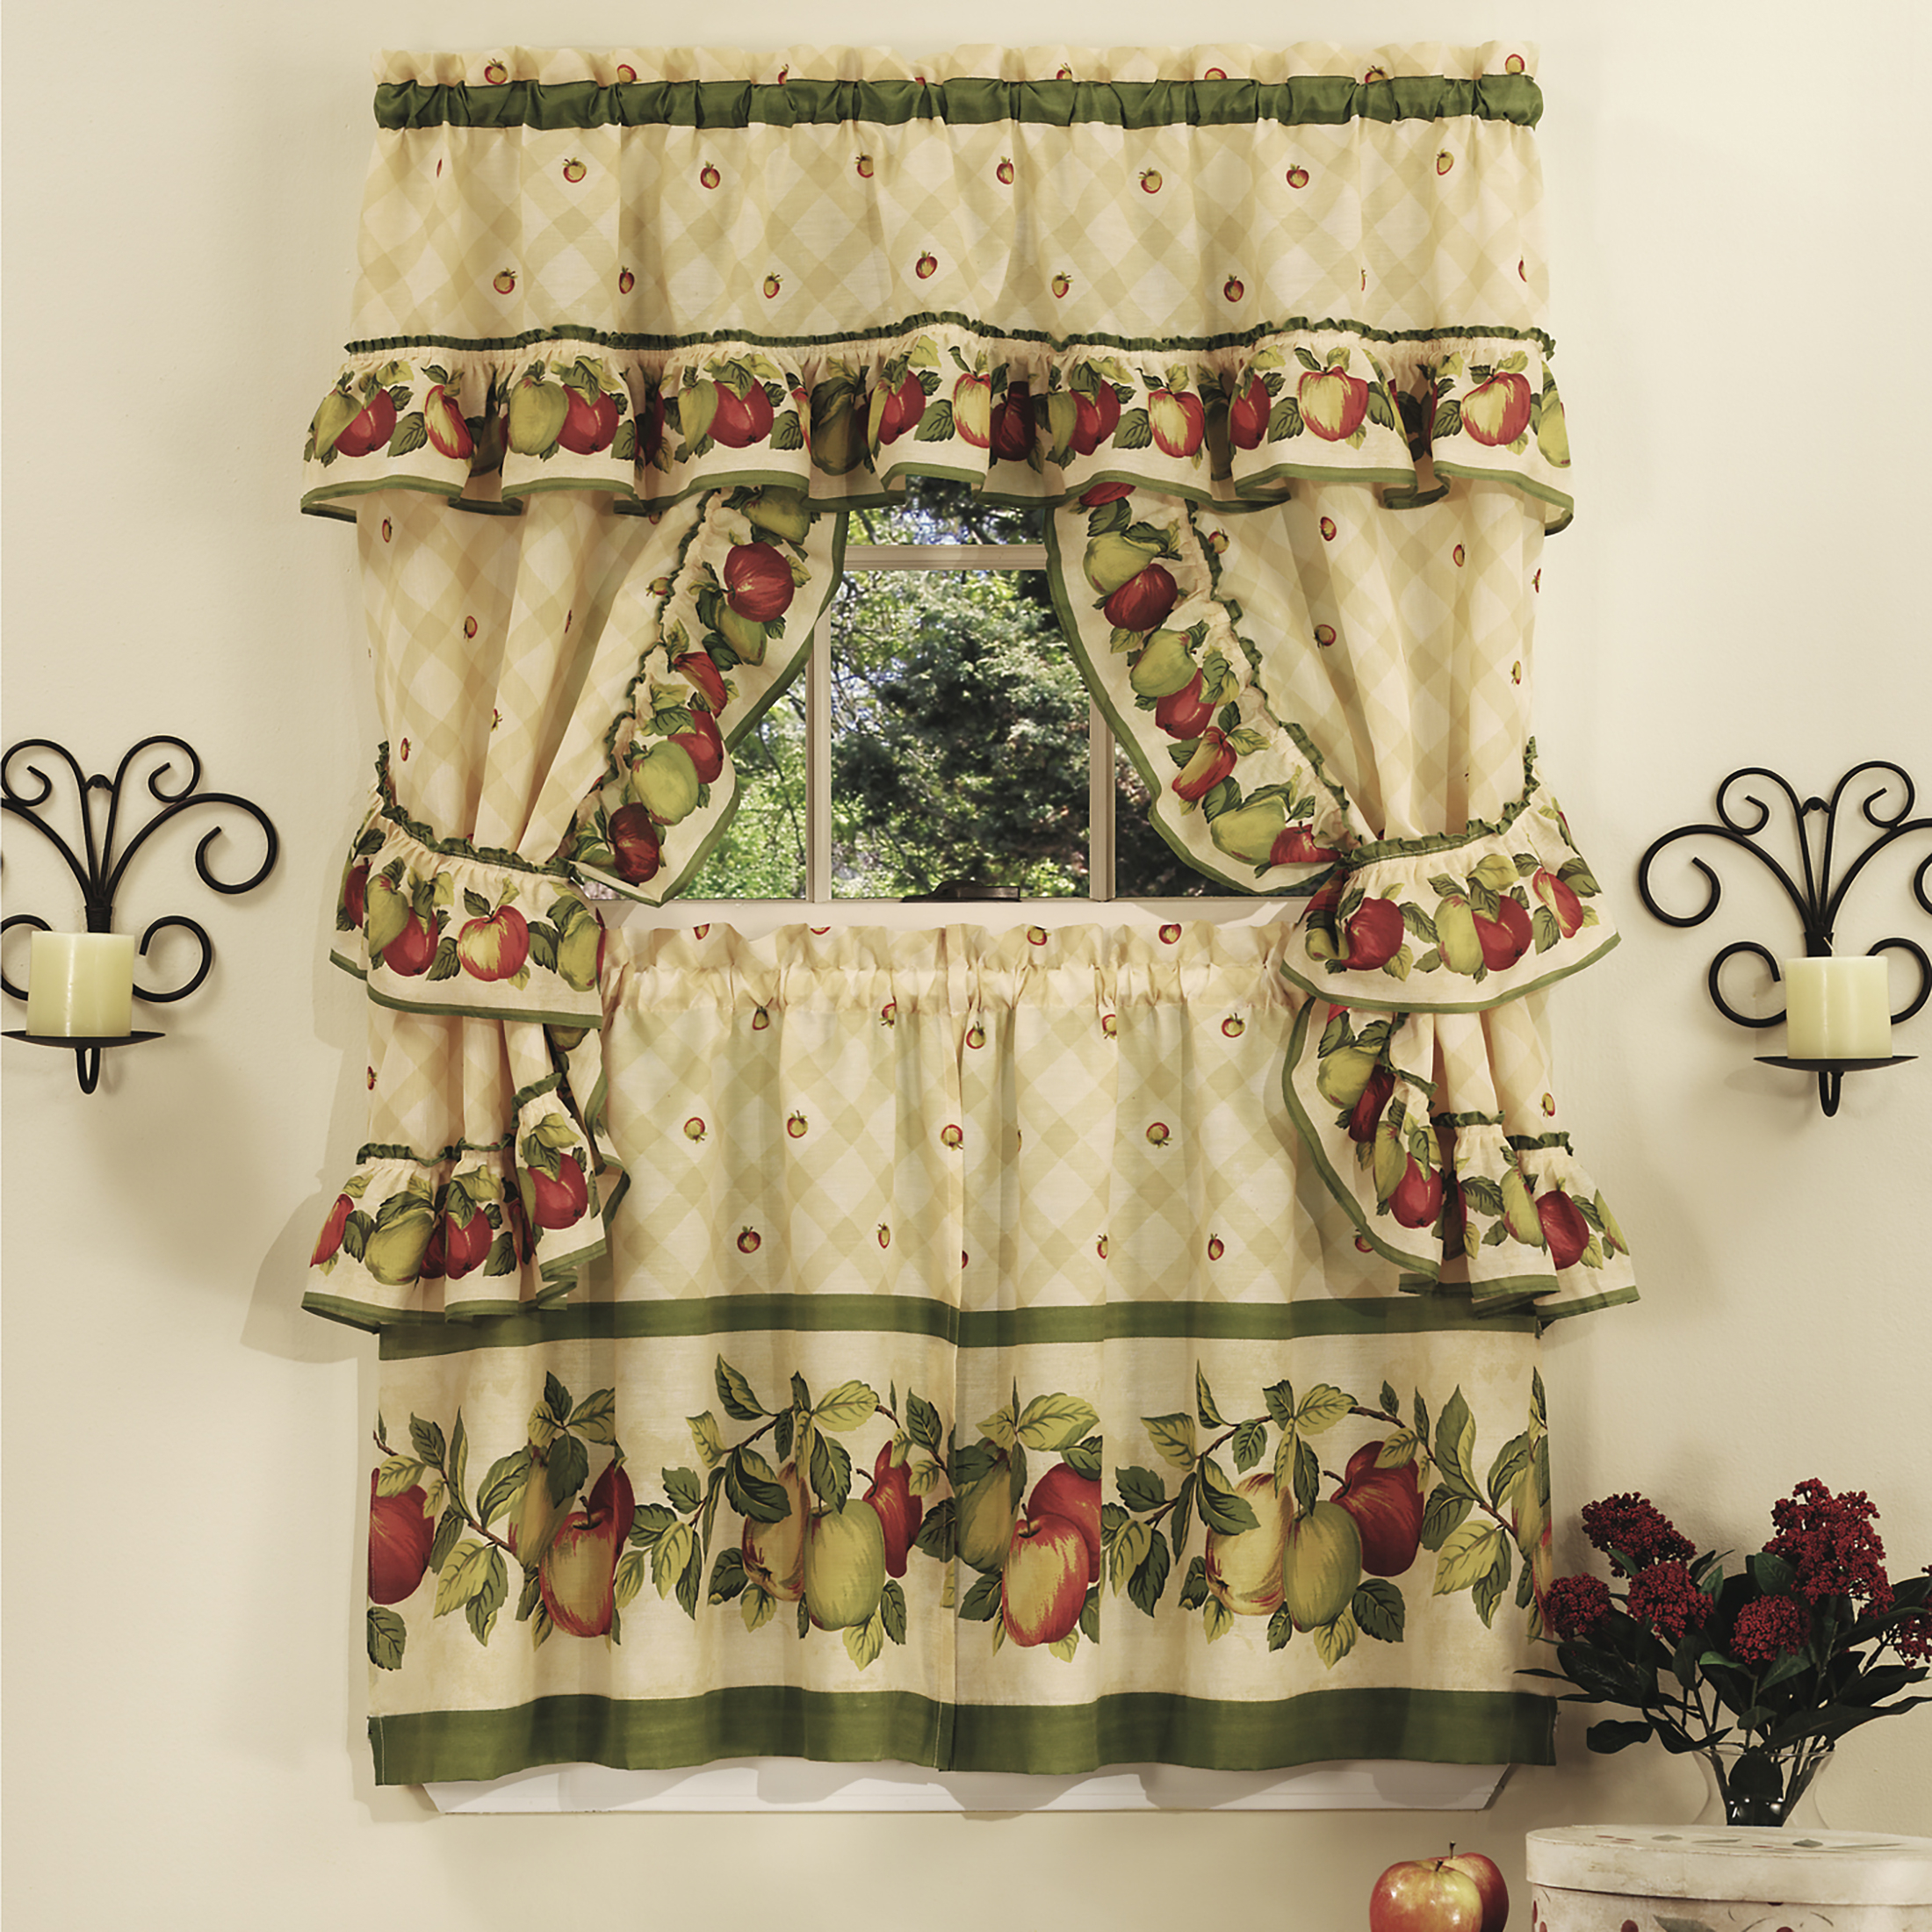 Widely Used Details About 5Pc Window Kitchen Curtain Cottage Set, Apple Vines, Tiers,  Valance, Tiebacks Regarding Delicious Apples Kitchen Curtain Tier And Valance Sets (View 20 of 20)